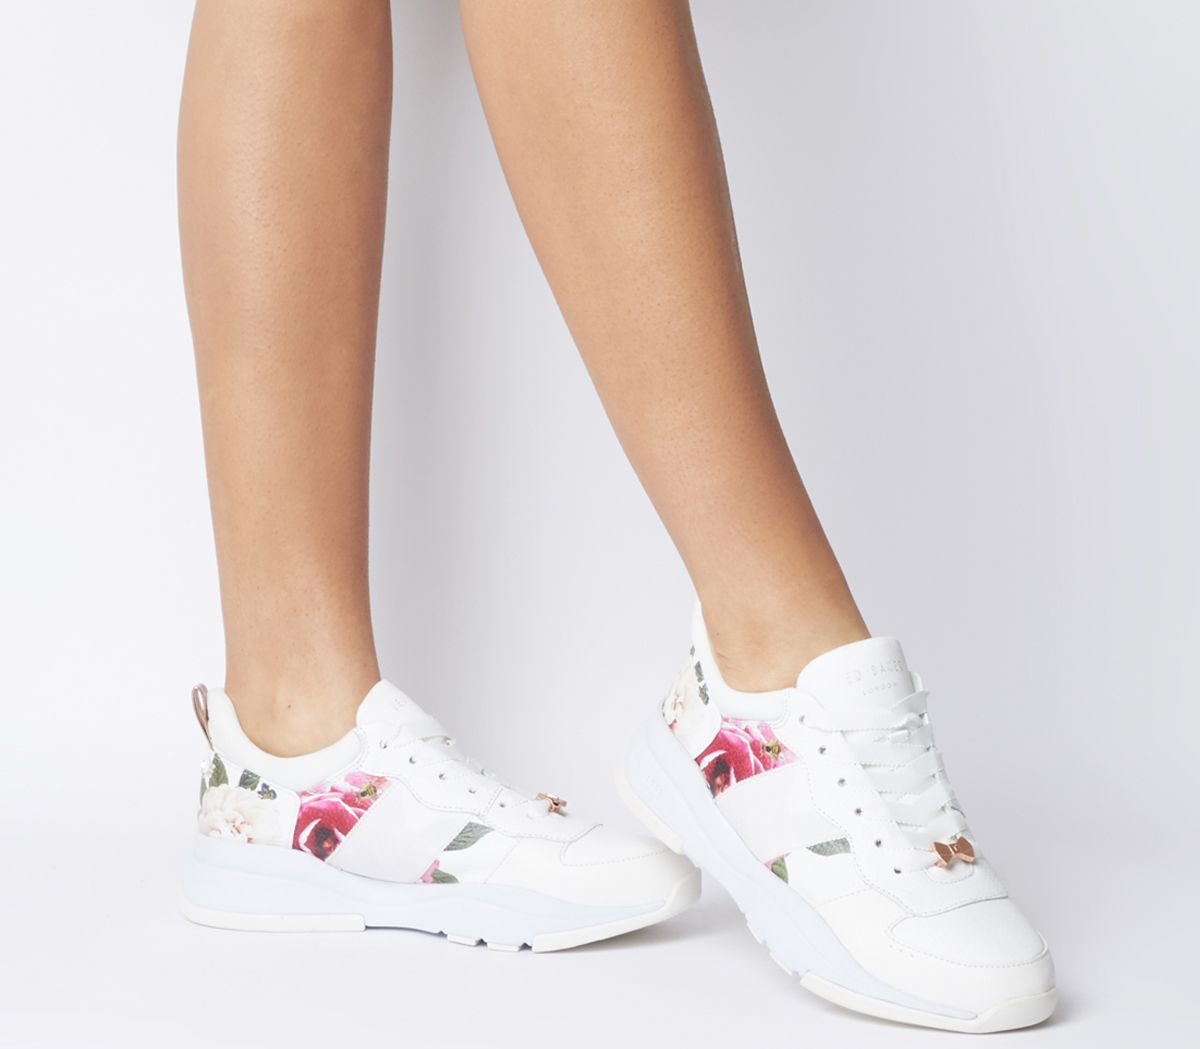 042432055f35 Ted Baker Waverdi Sneakers Magnificent White Leather - Flats